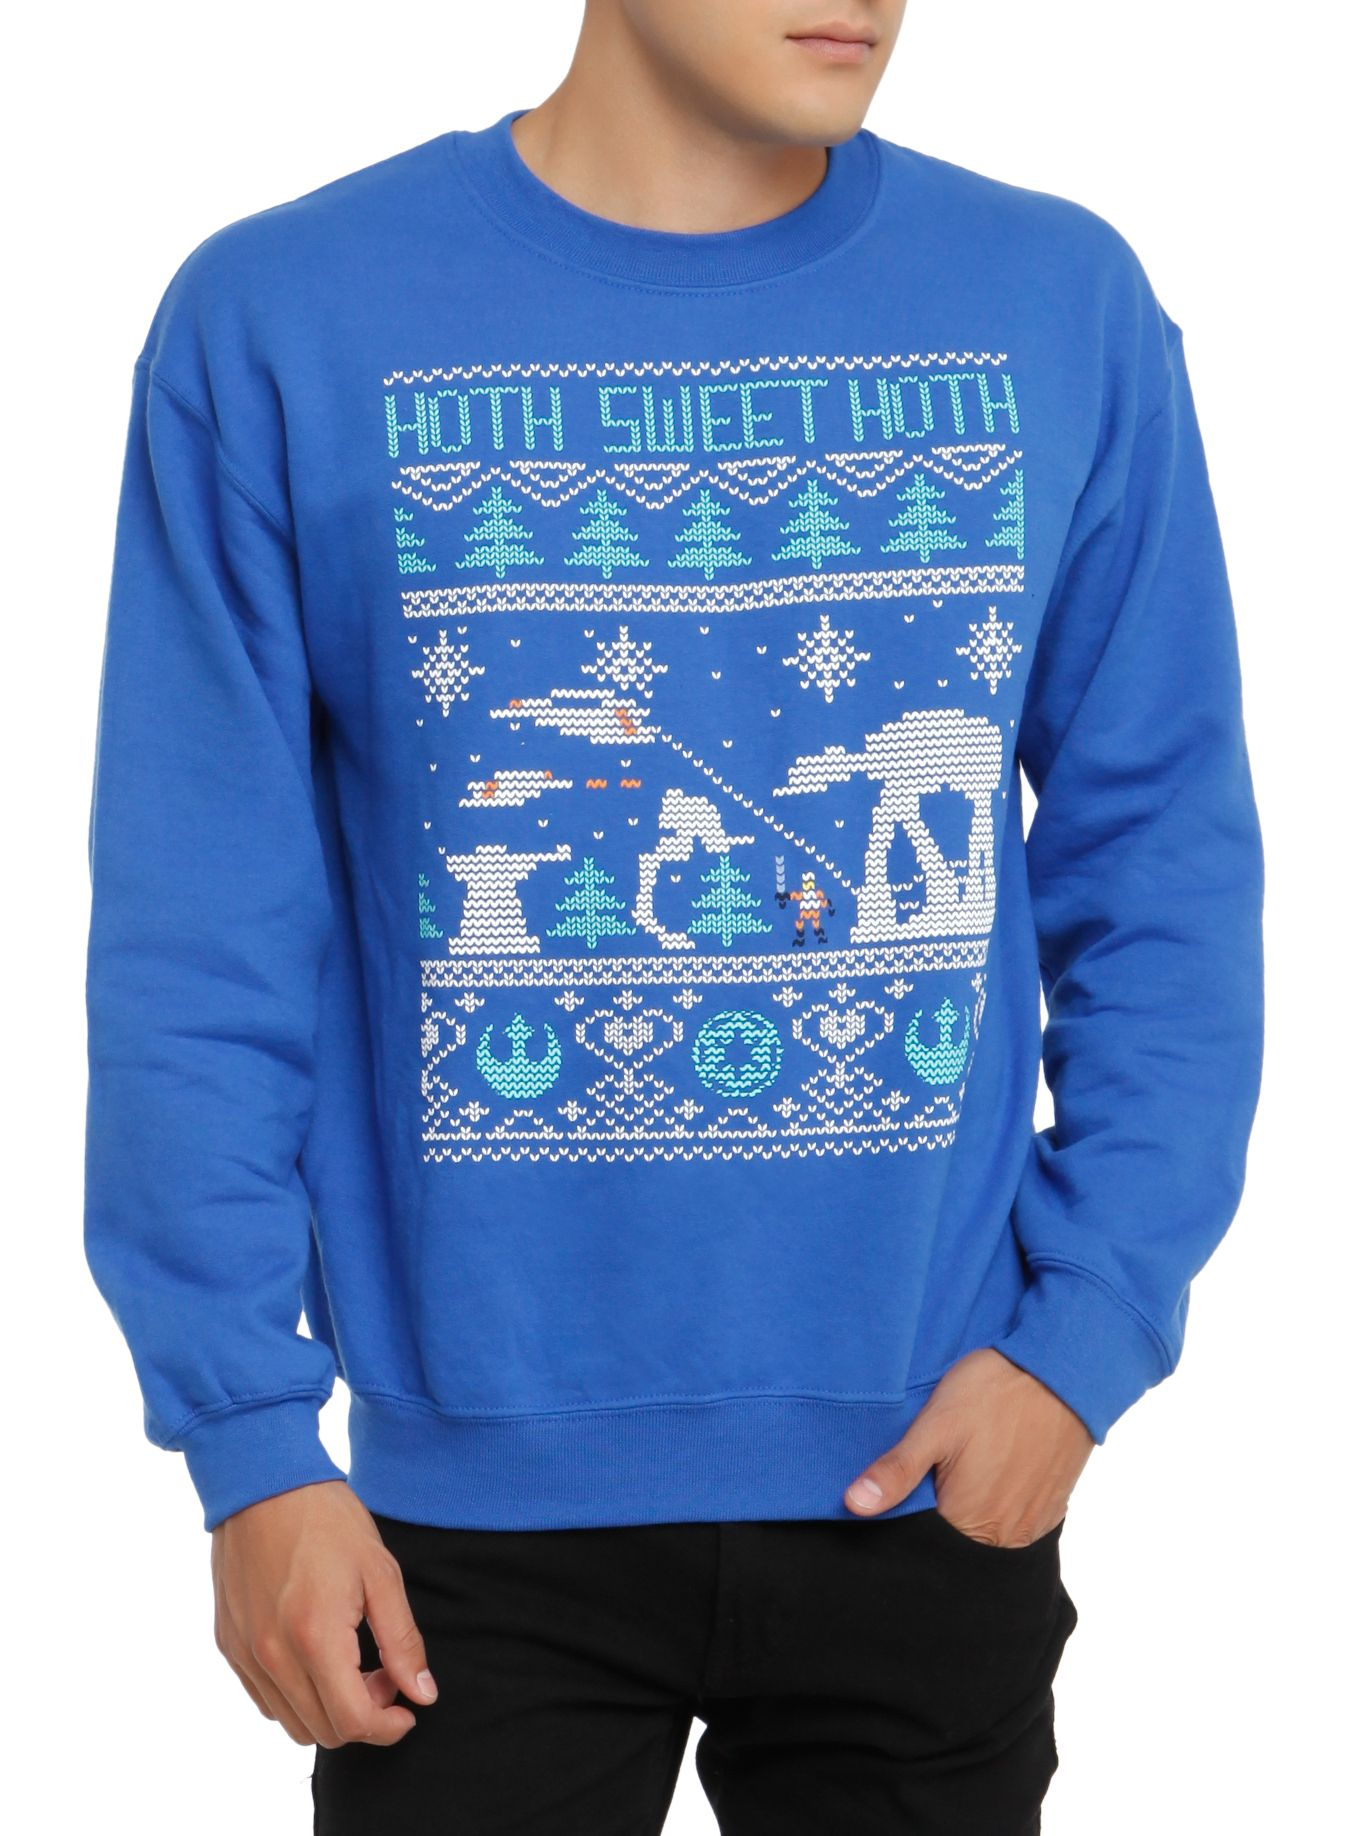 Yessssssssssss This Is Fantastic I Want It Star Wars Hoth Ugly